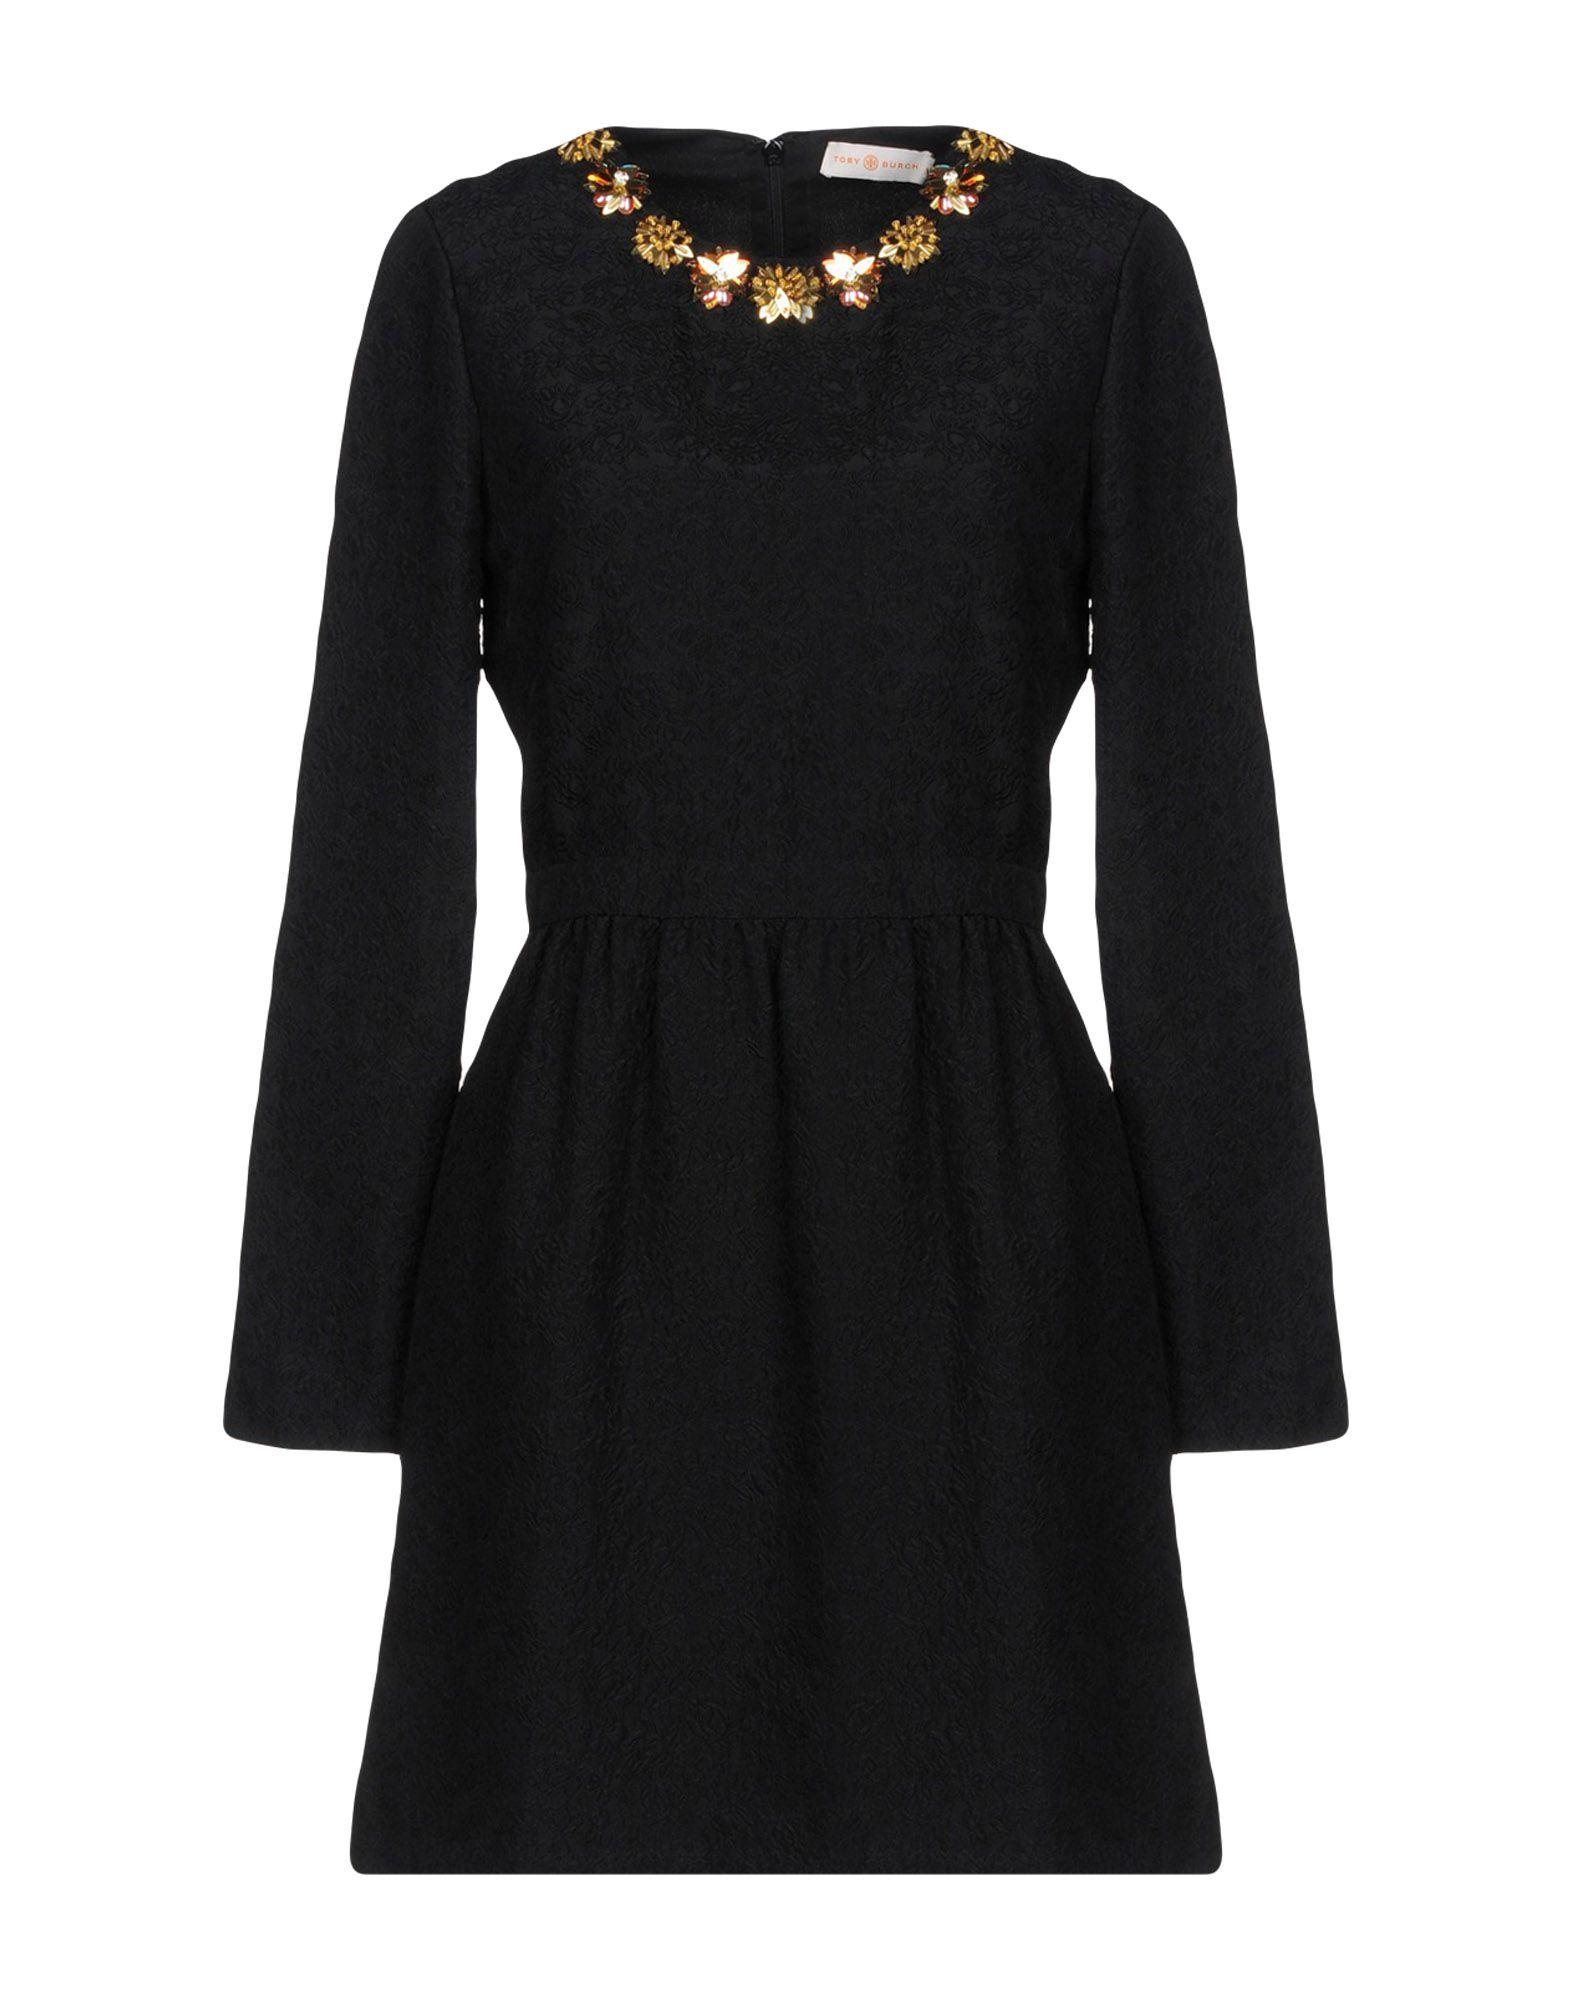 Tory Burch Short Dress In Black